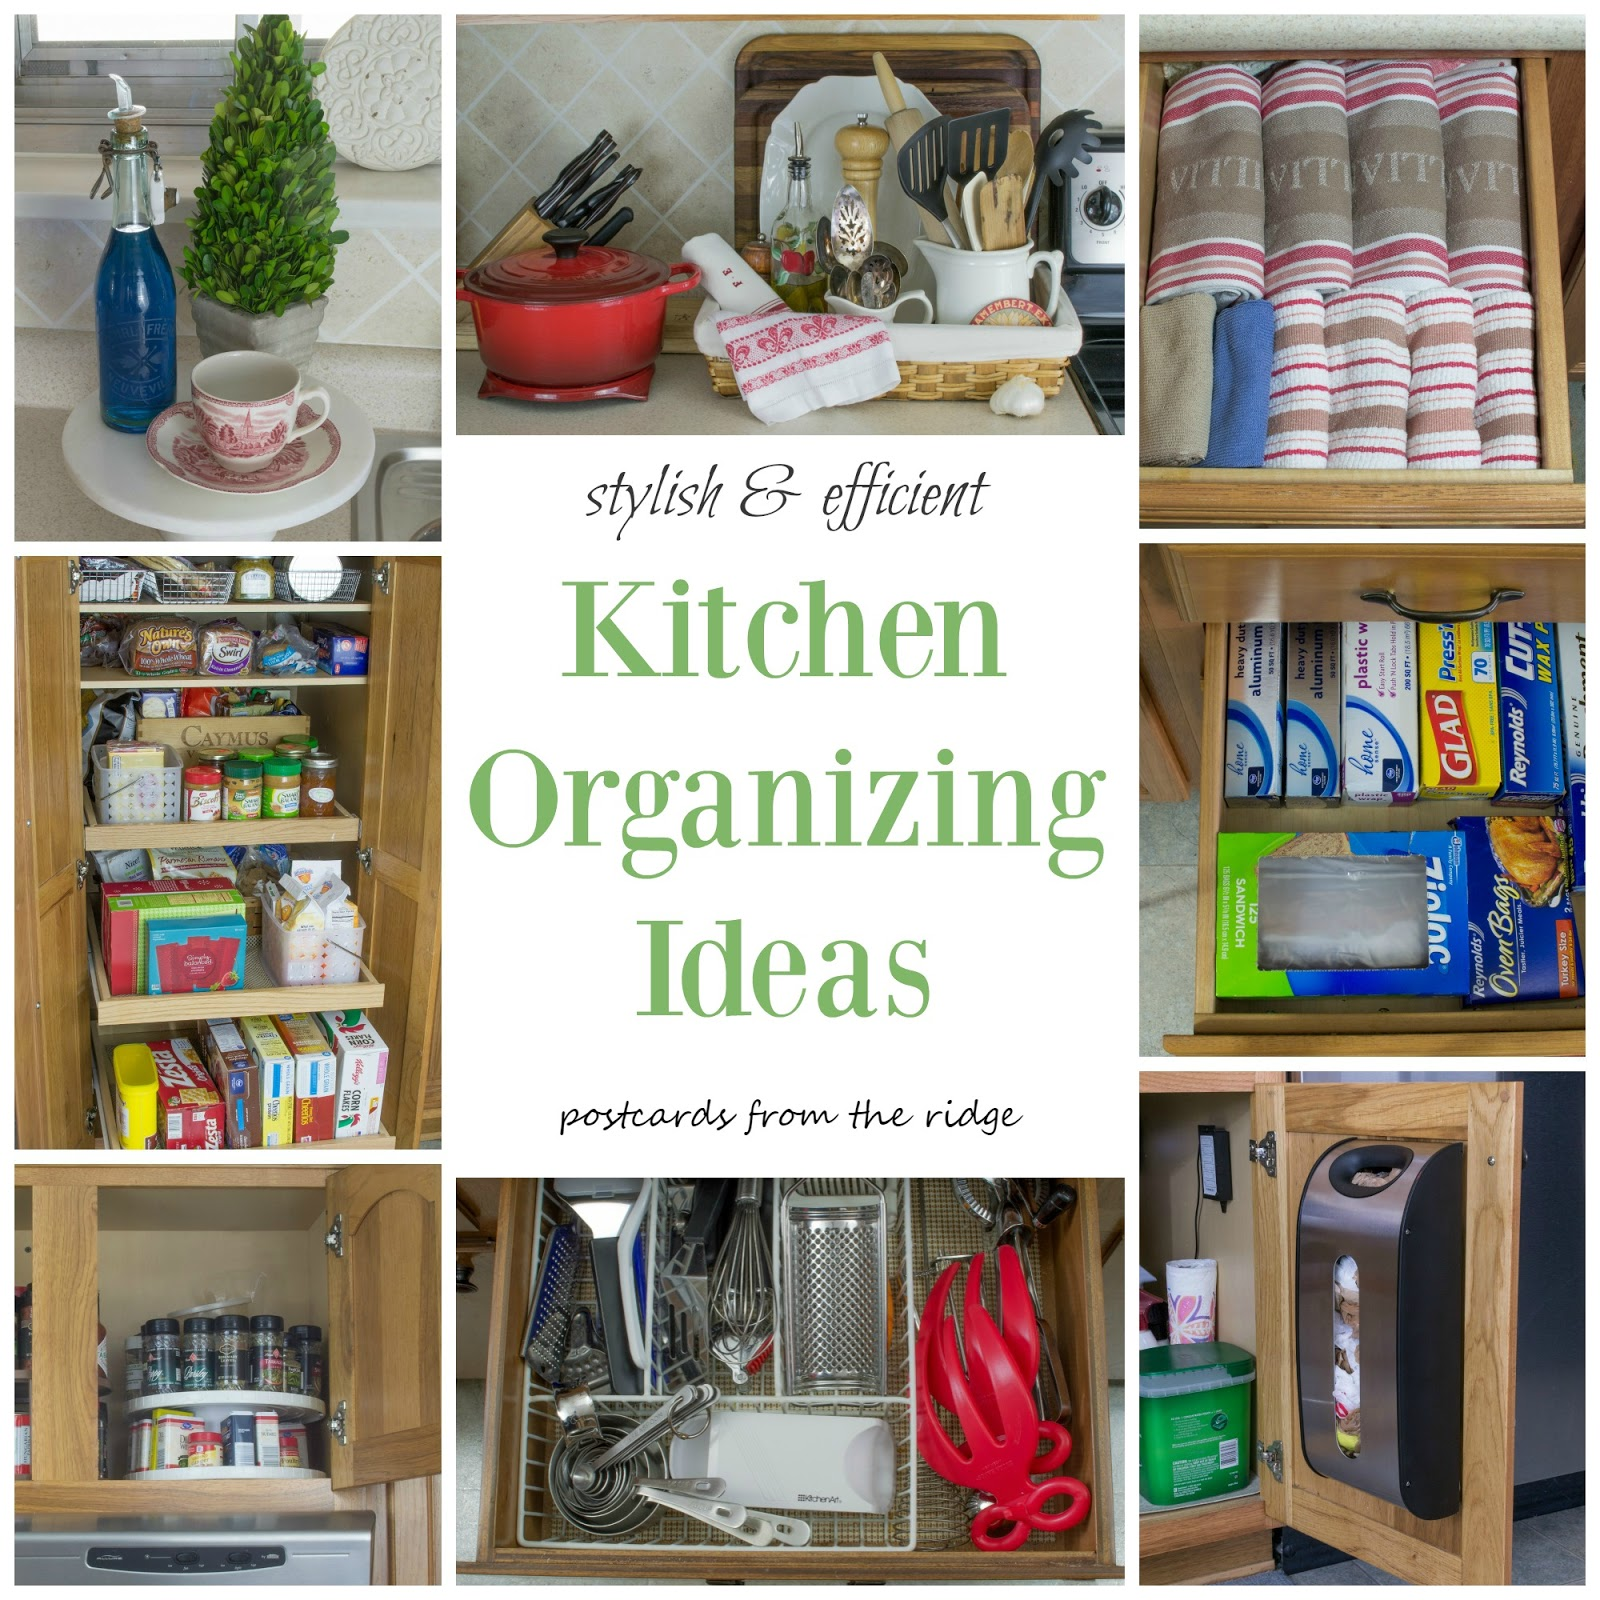 Kitchen Organization Tips - Postcards from the Ridge